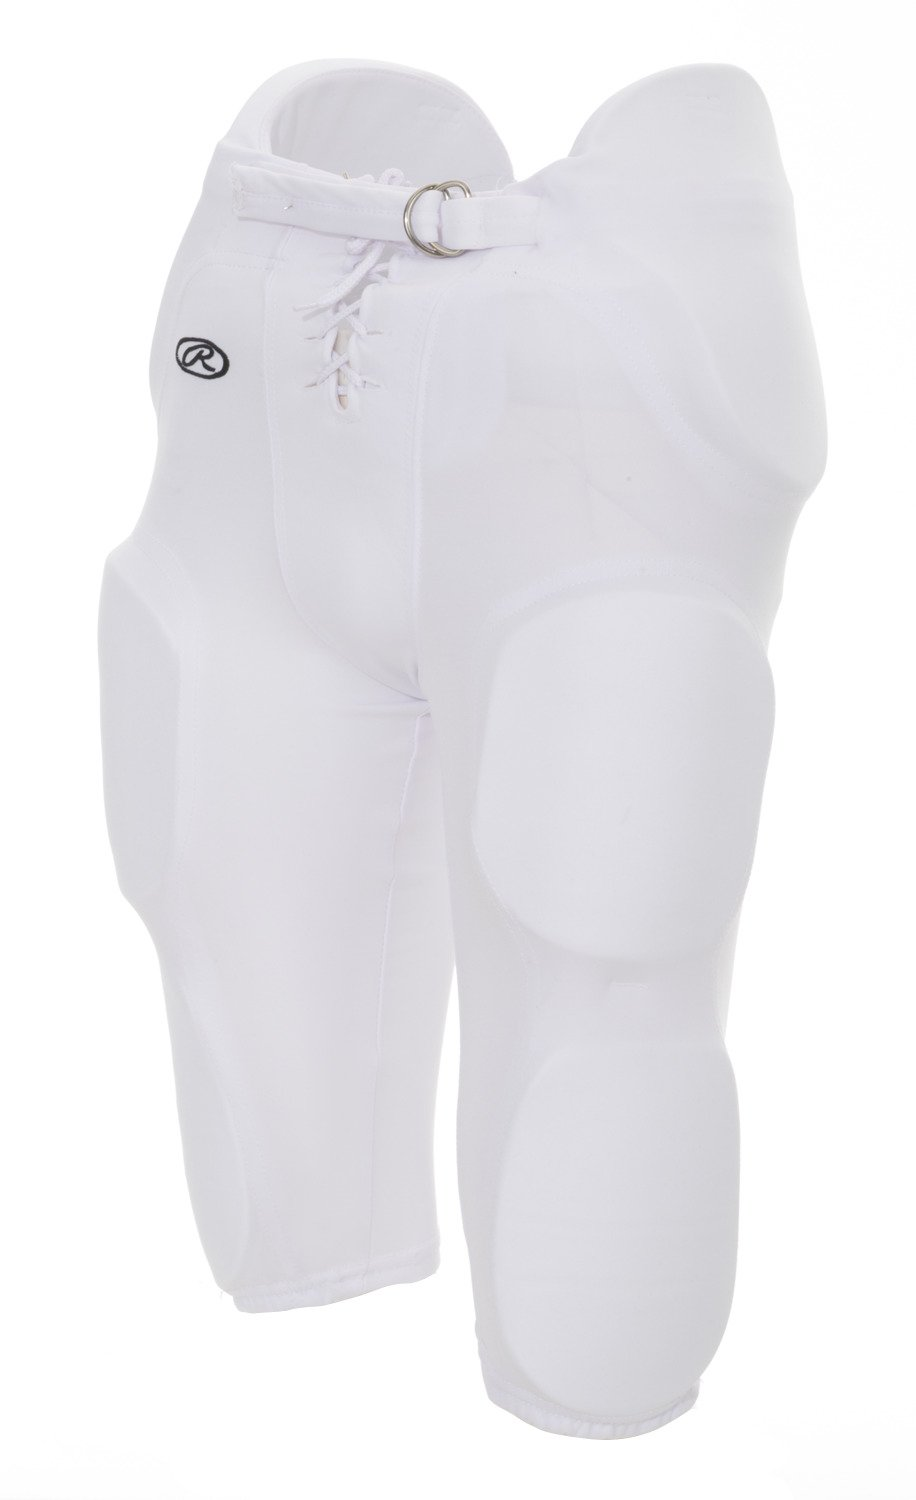 Rawlings Integrated Adult Men/'s Practice//Game Football Pants With Pads F3500P